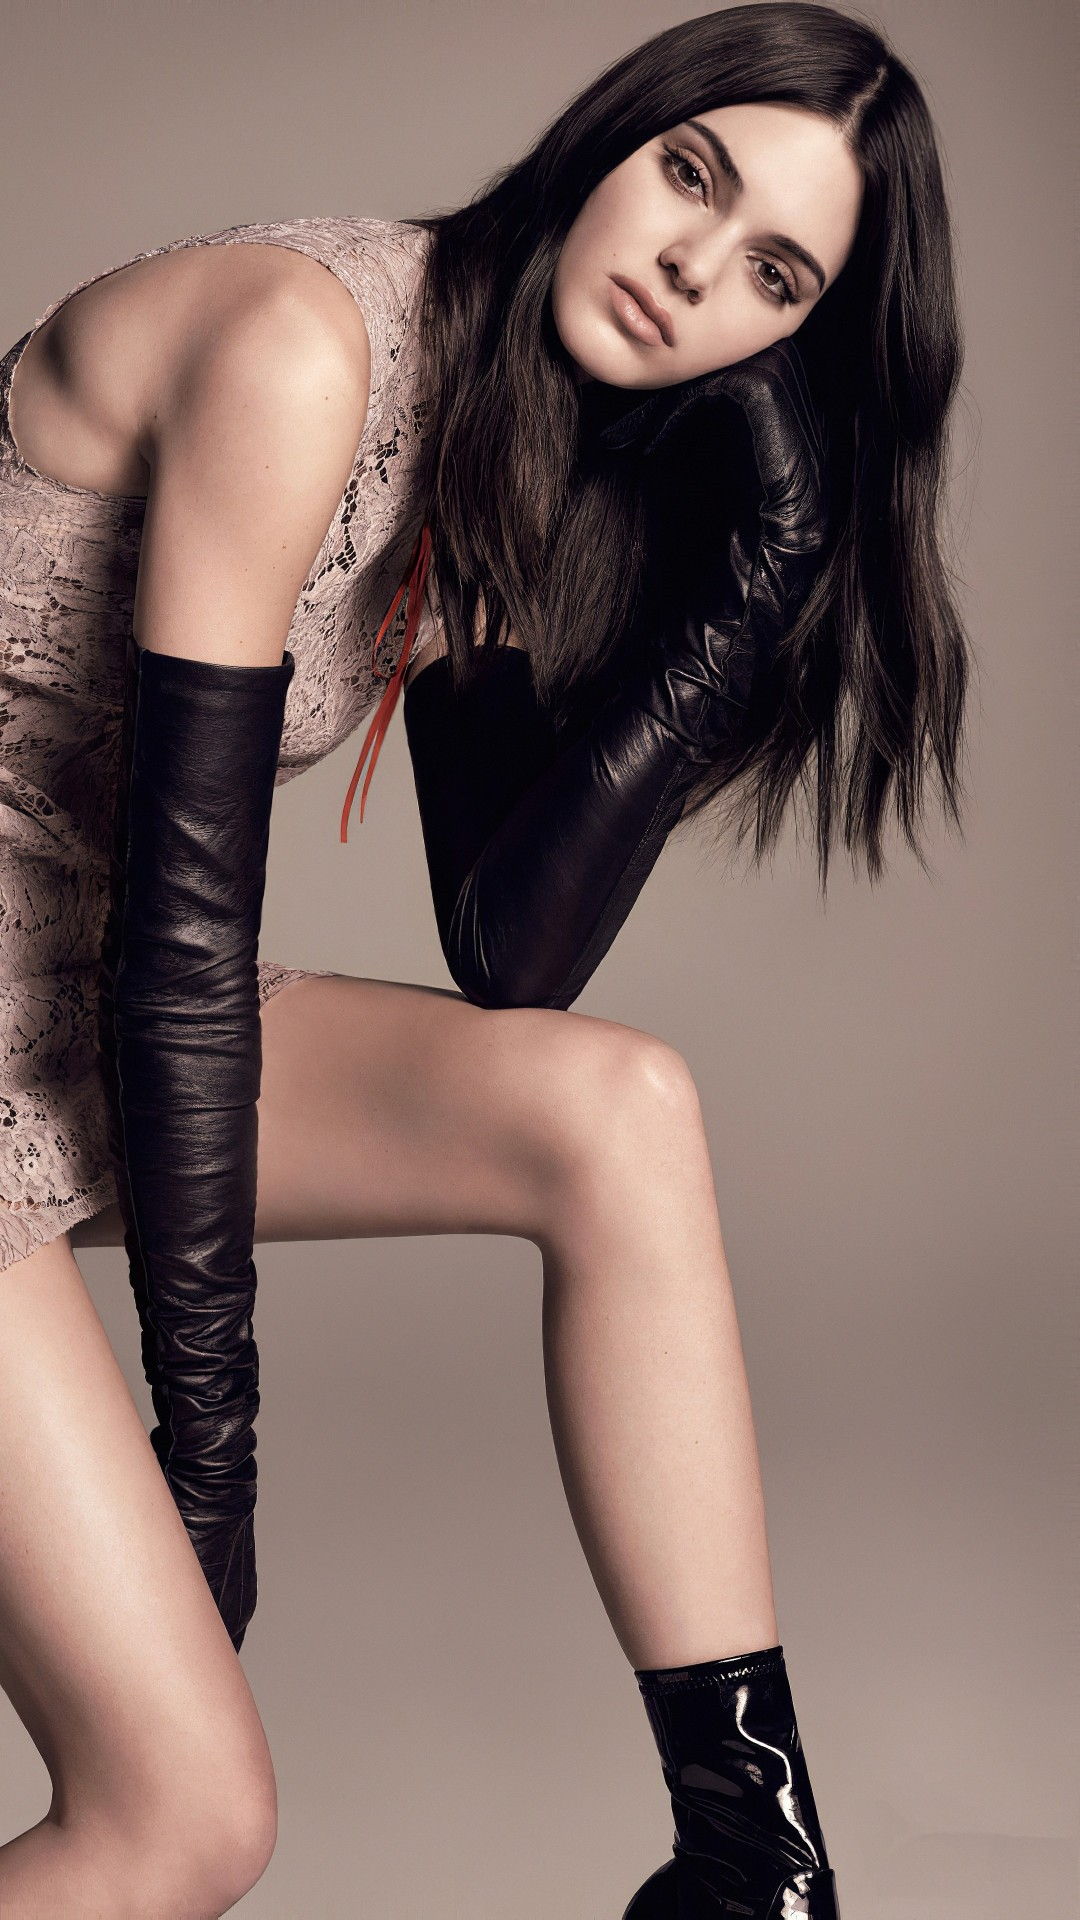 Kendall Jenner hd wallpaper for iphone